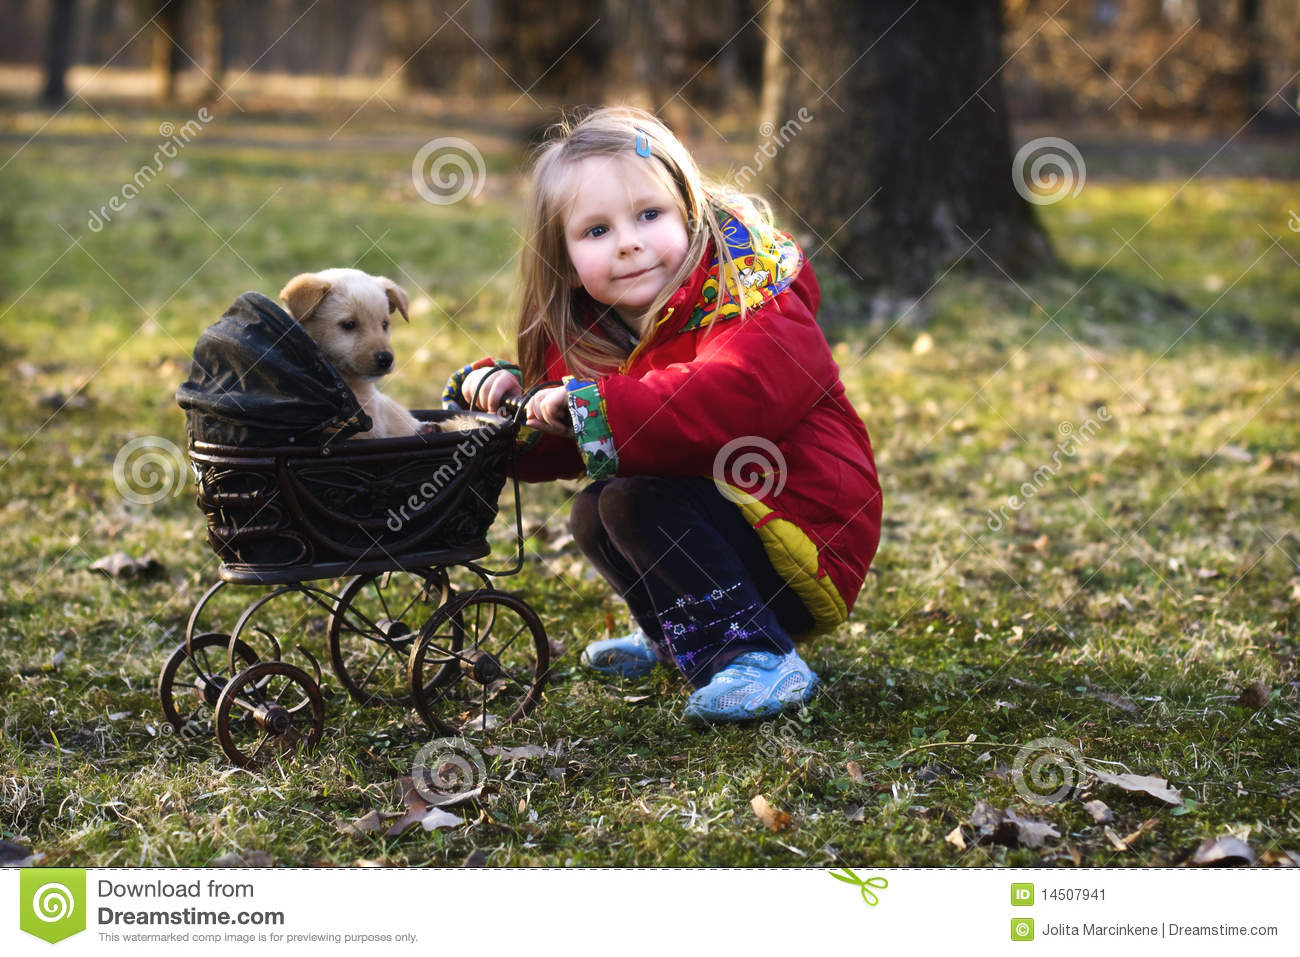 Download Girl with dog and pram stock image. Image of blond, doll - 14507941